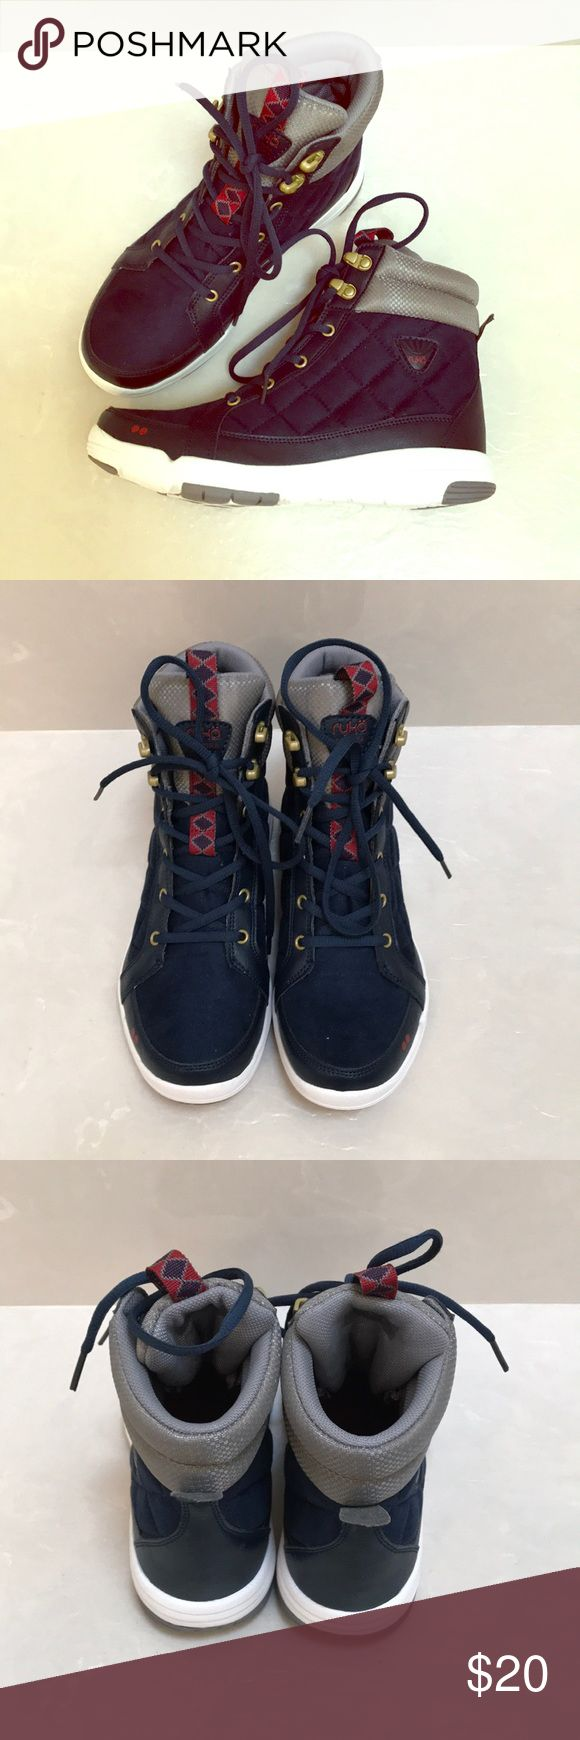 "Women's boots, brand new, size 7.5 Brand new""Ryka"" boots, super light, navy with red accents, size 7.5 Ryka Shoes Ankle Boots & Booties"